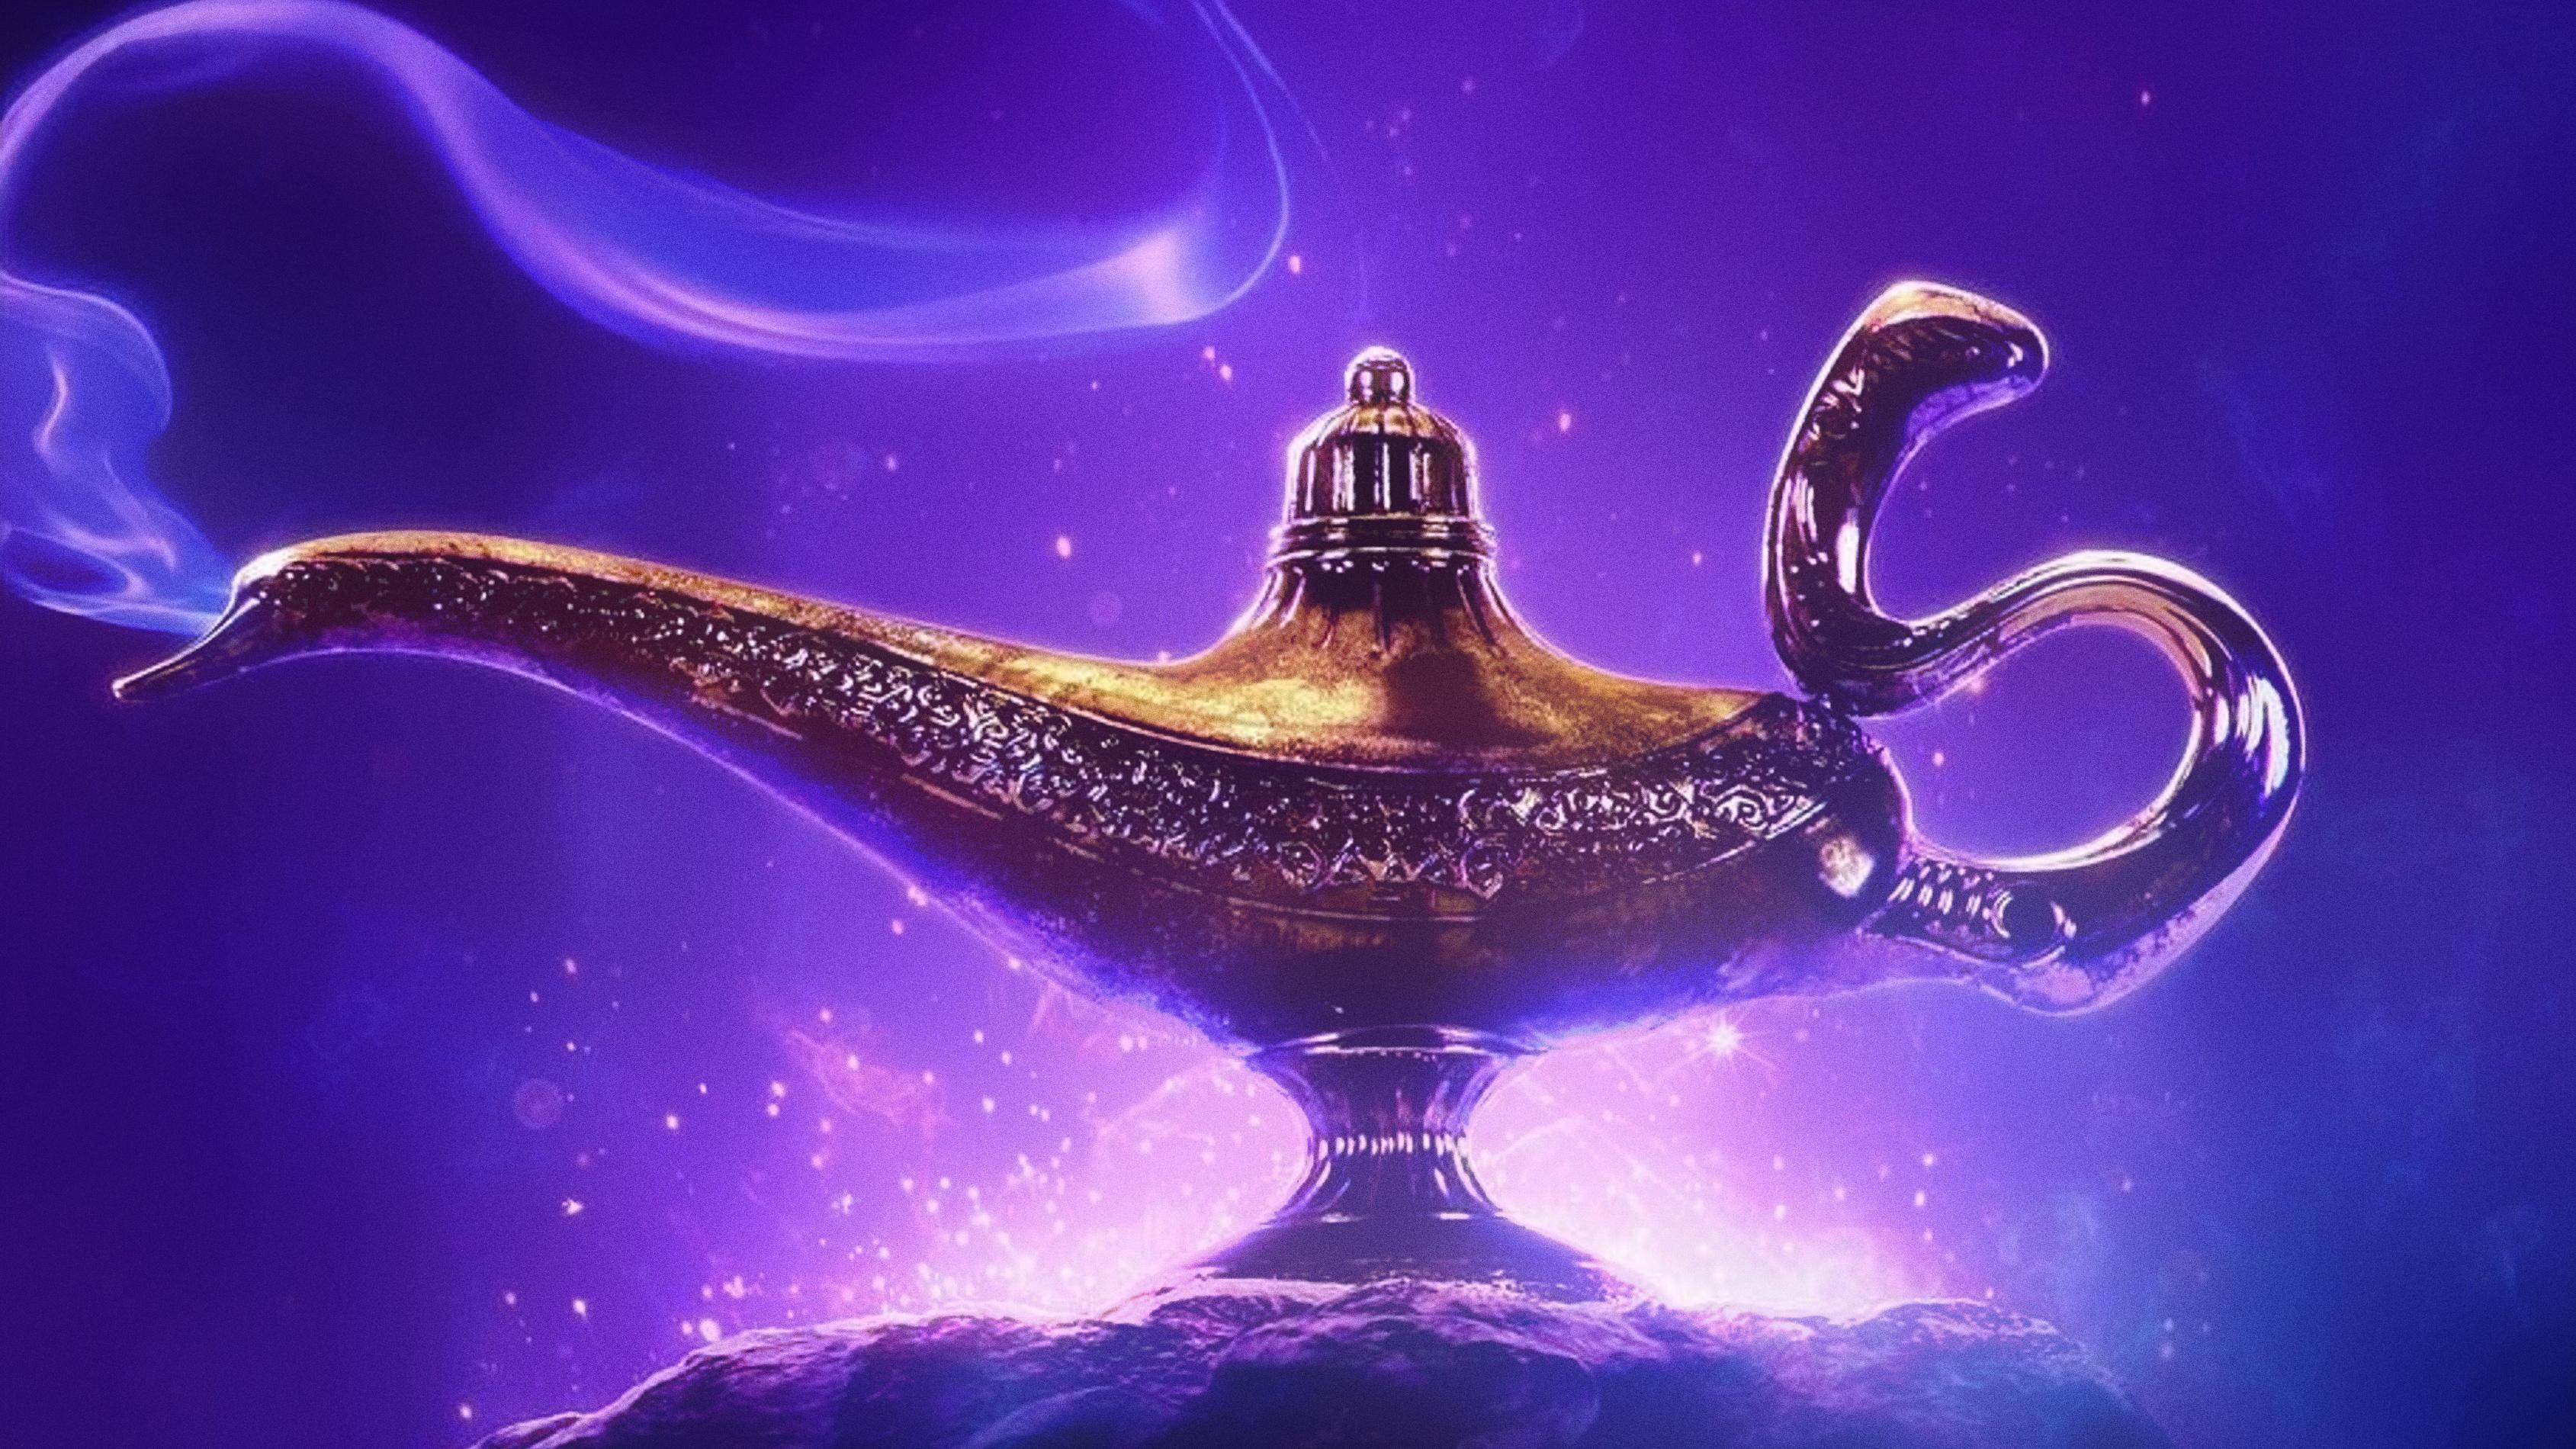 Aladdin 2019 Wallpapers Wallpaper Cave